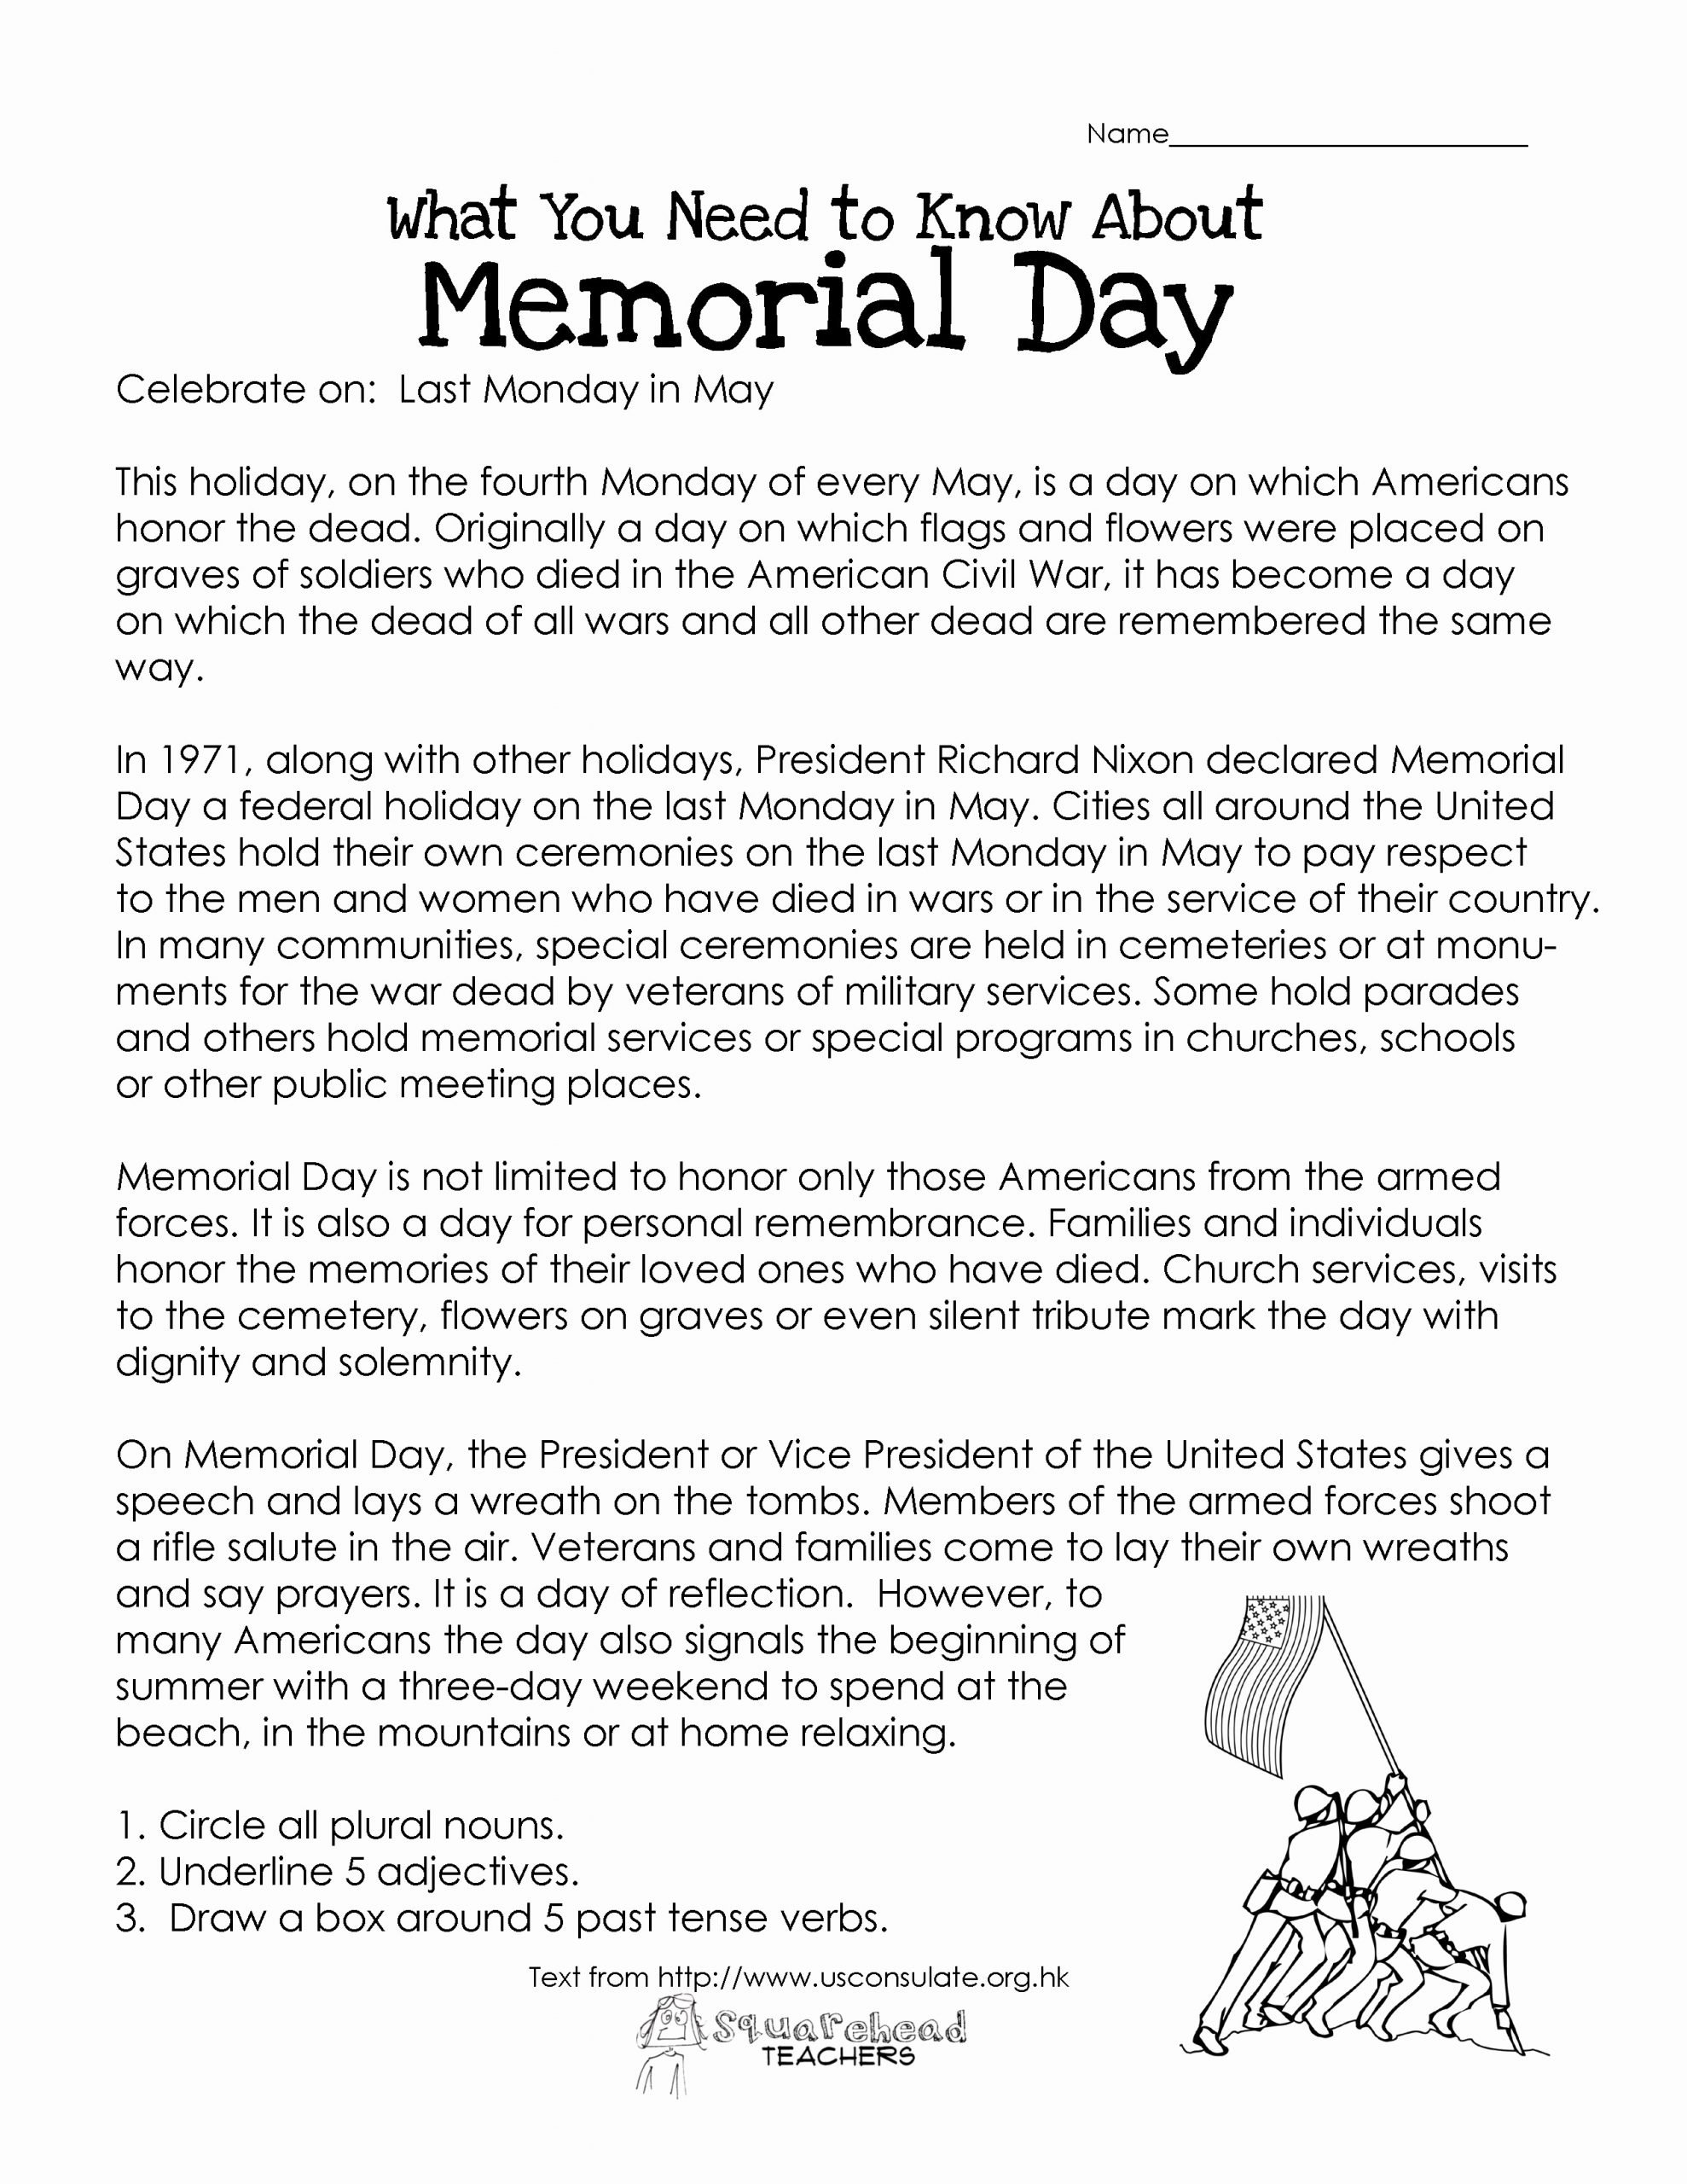 Memorial Day Reading Comprehension Worksheets Best Of Memorial Day Free Worksheet